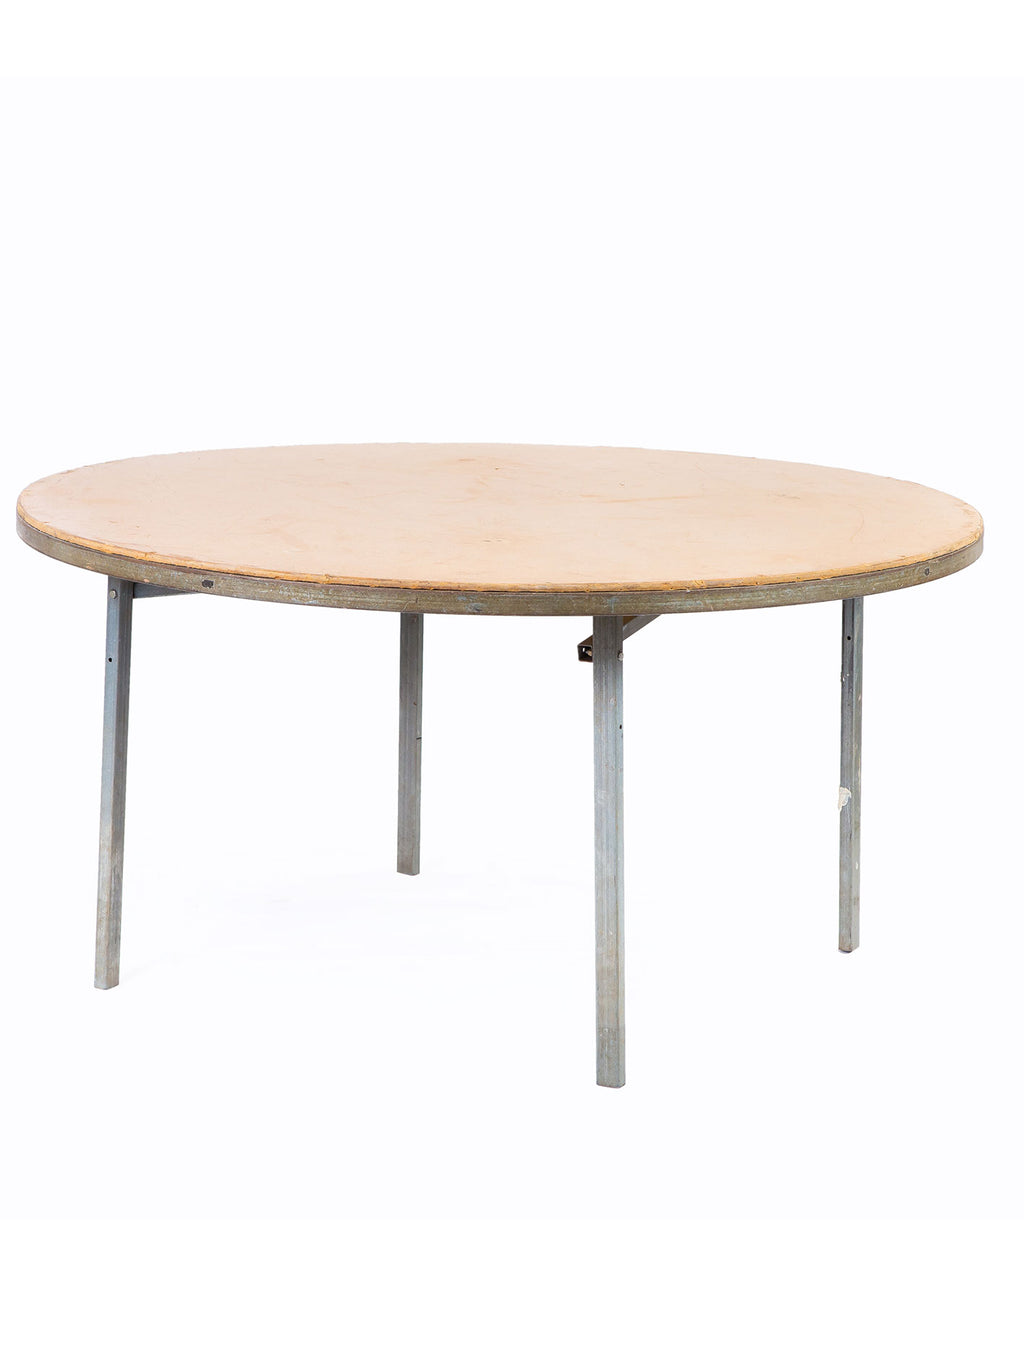 Round 6ft Table